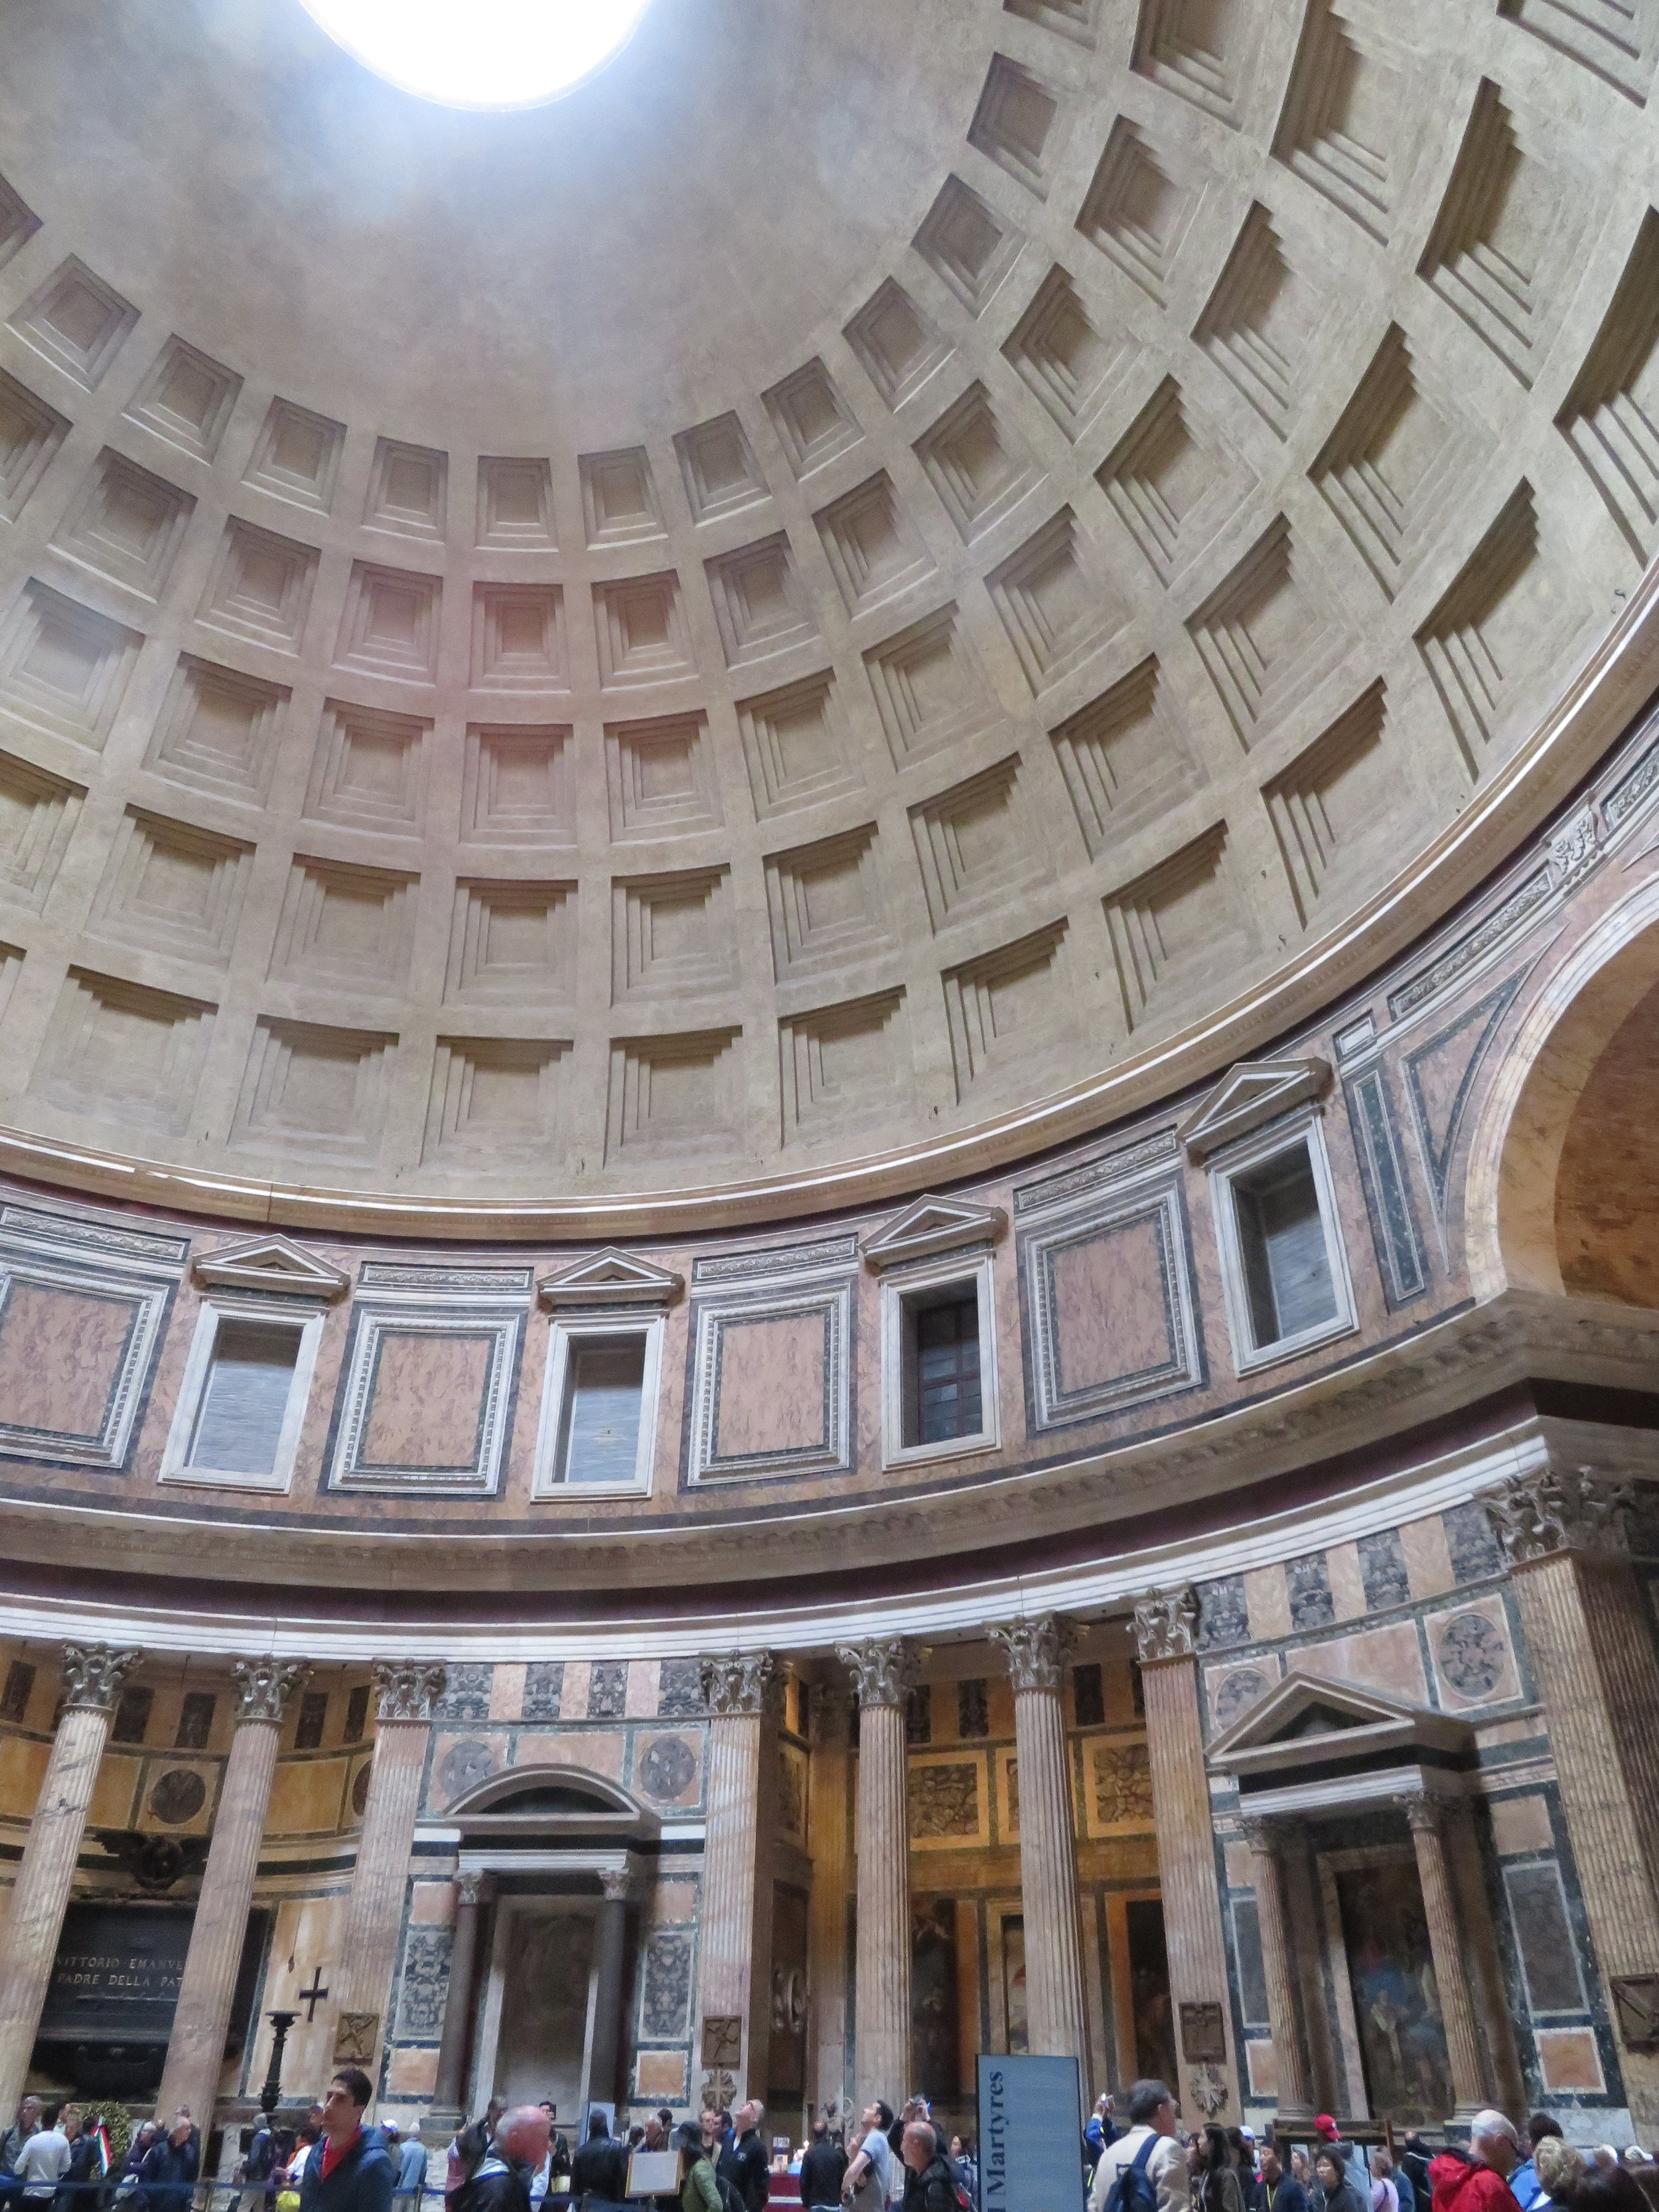 From a recent trip to Italy, Dorothy captured the architectural wonder that is the coffered dome and central oculus of the Pantheon in Rome. Spoleto's Umbrian poppy fields, below.  Photo source: Willetts Design & Associates